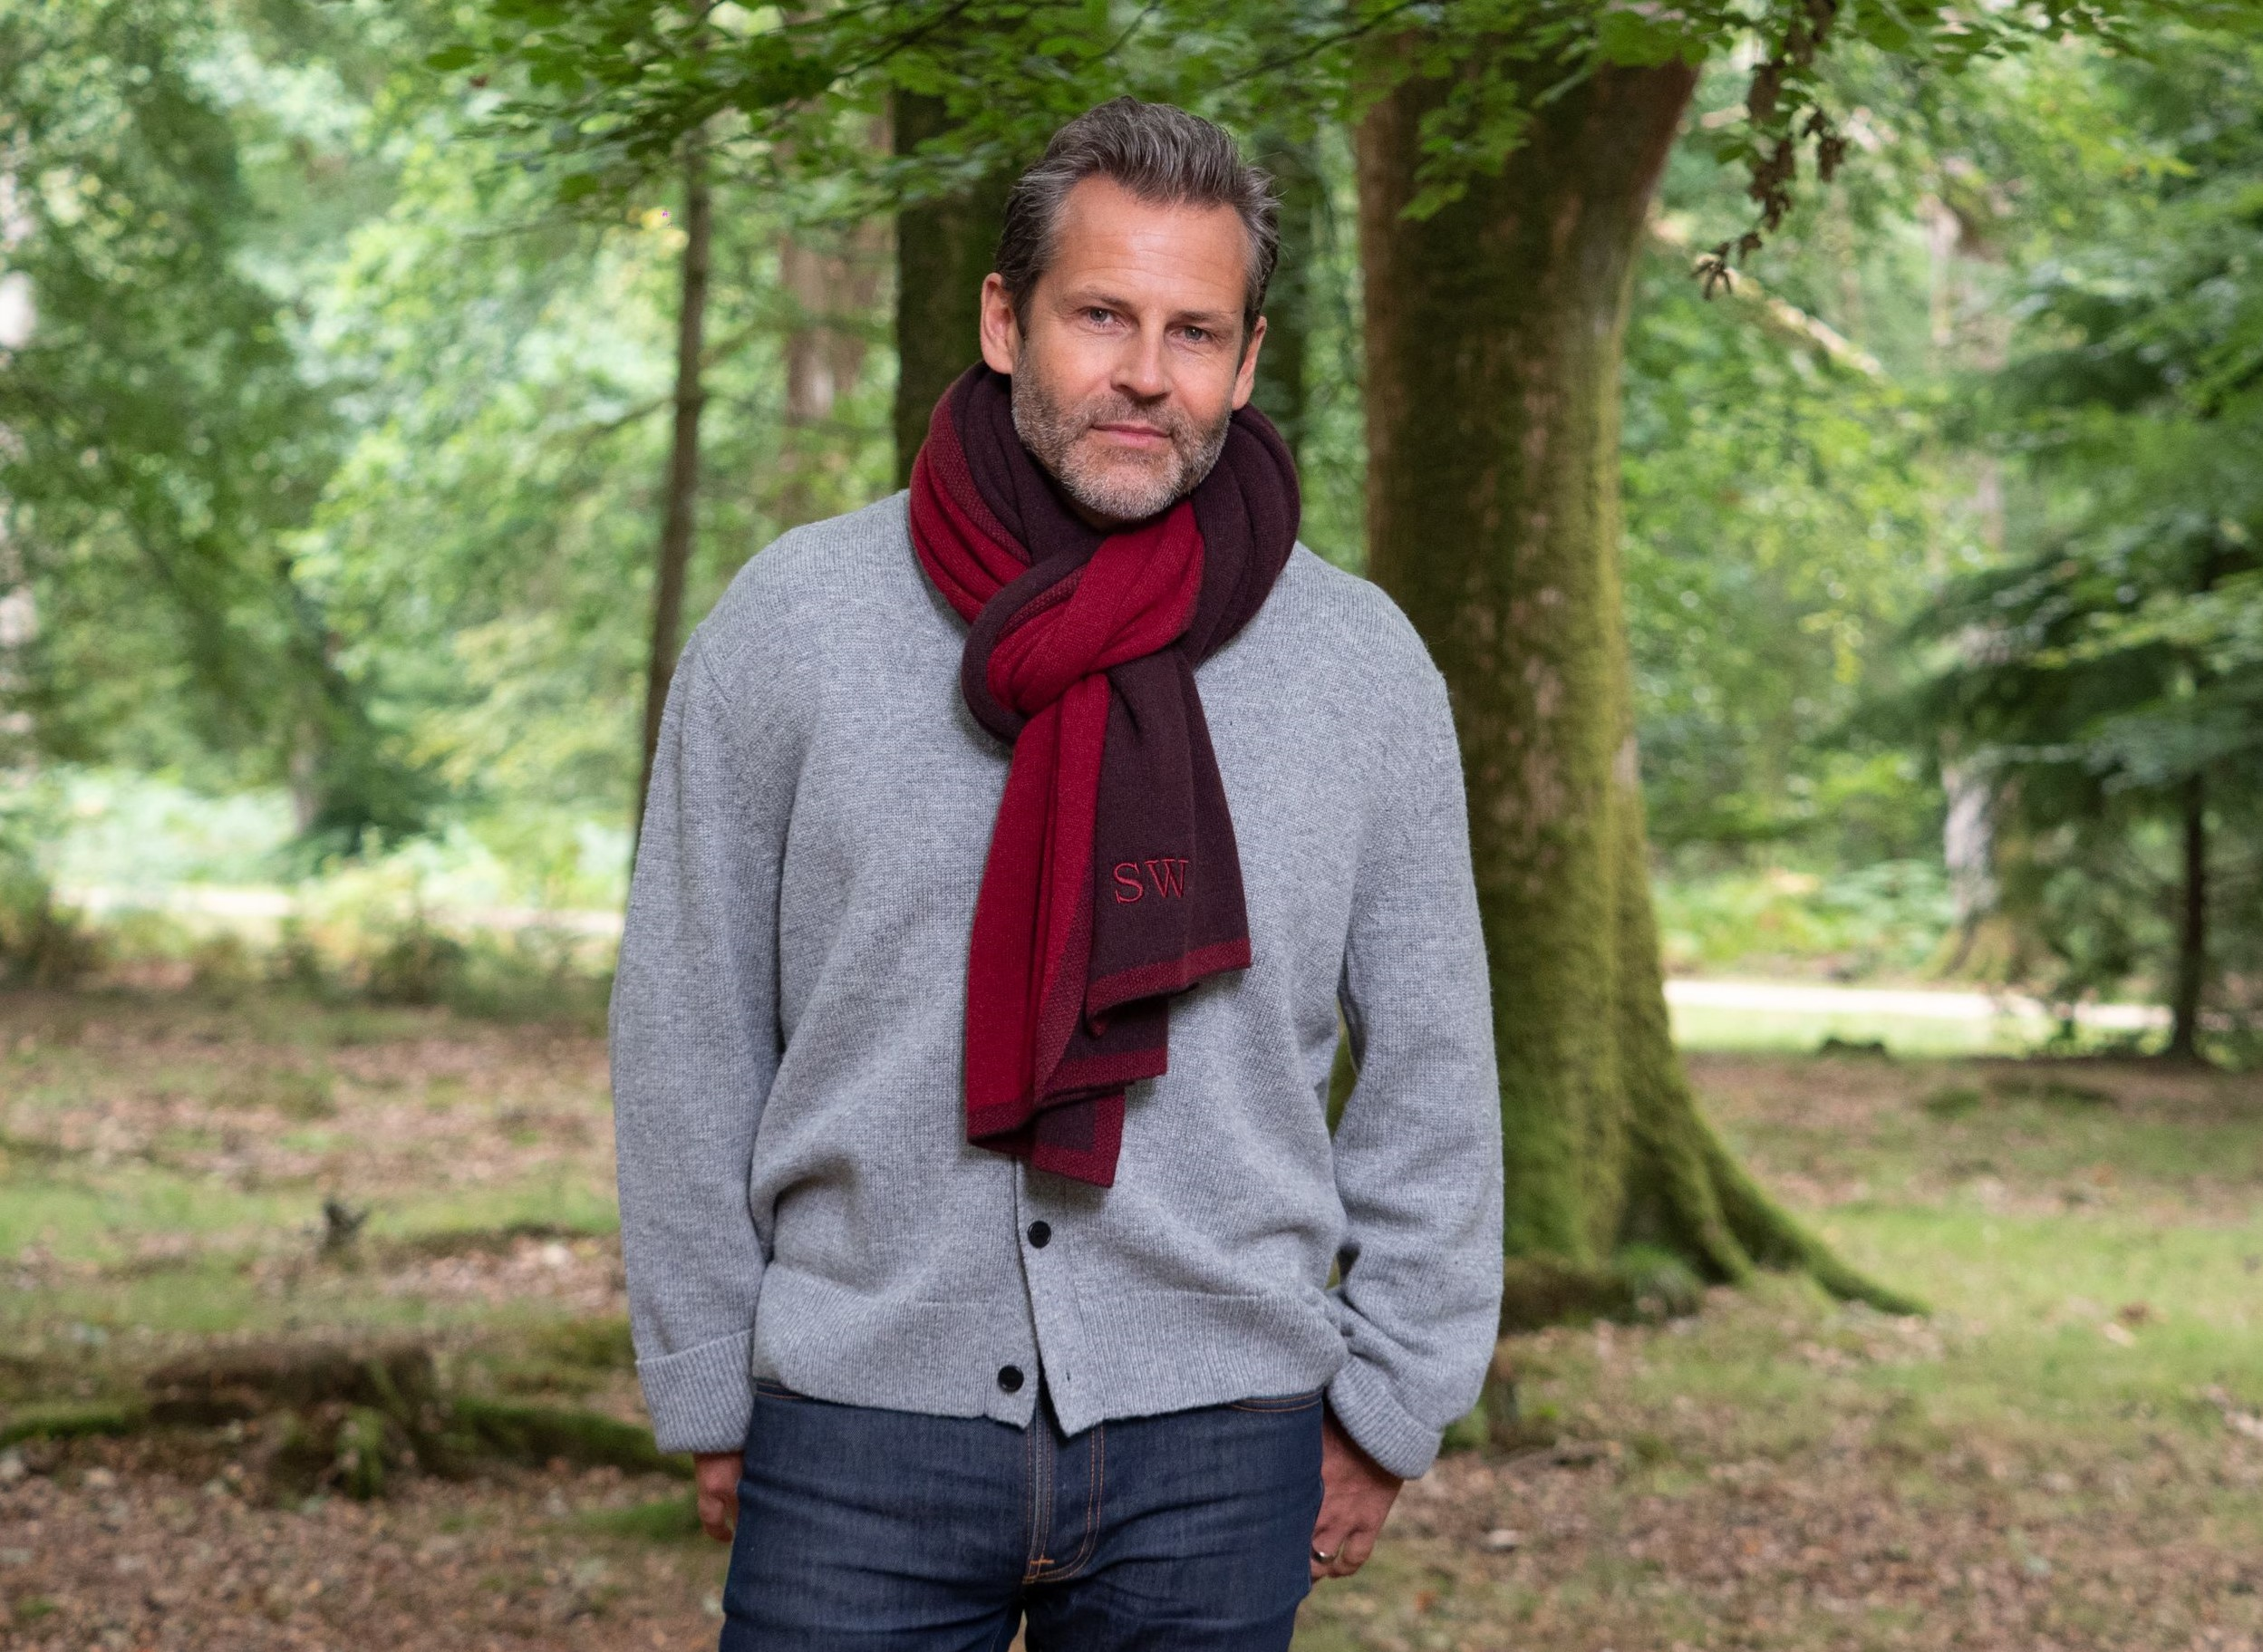 How To Wear A Men's Blanket Scarf Image